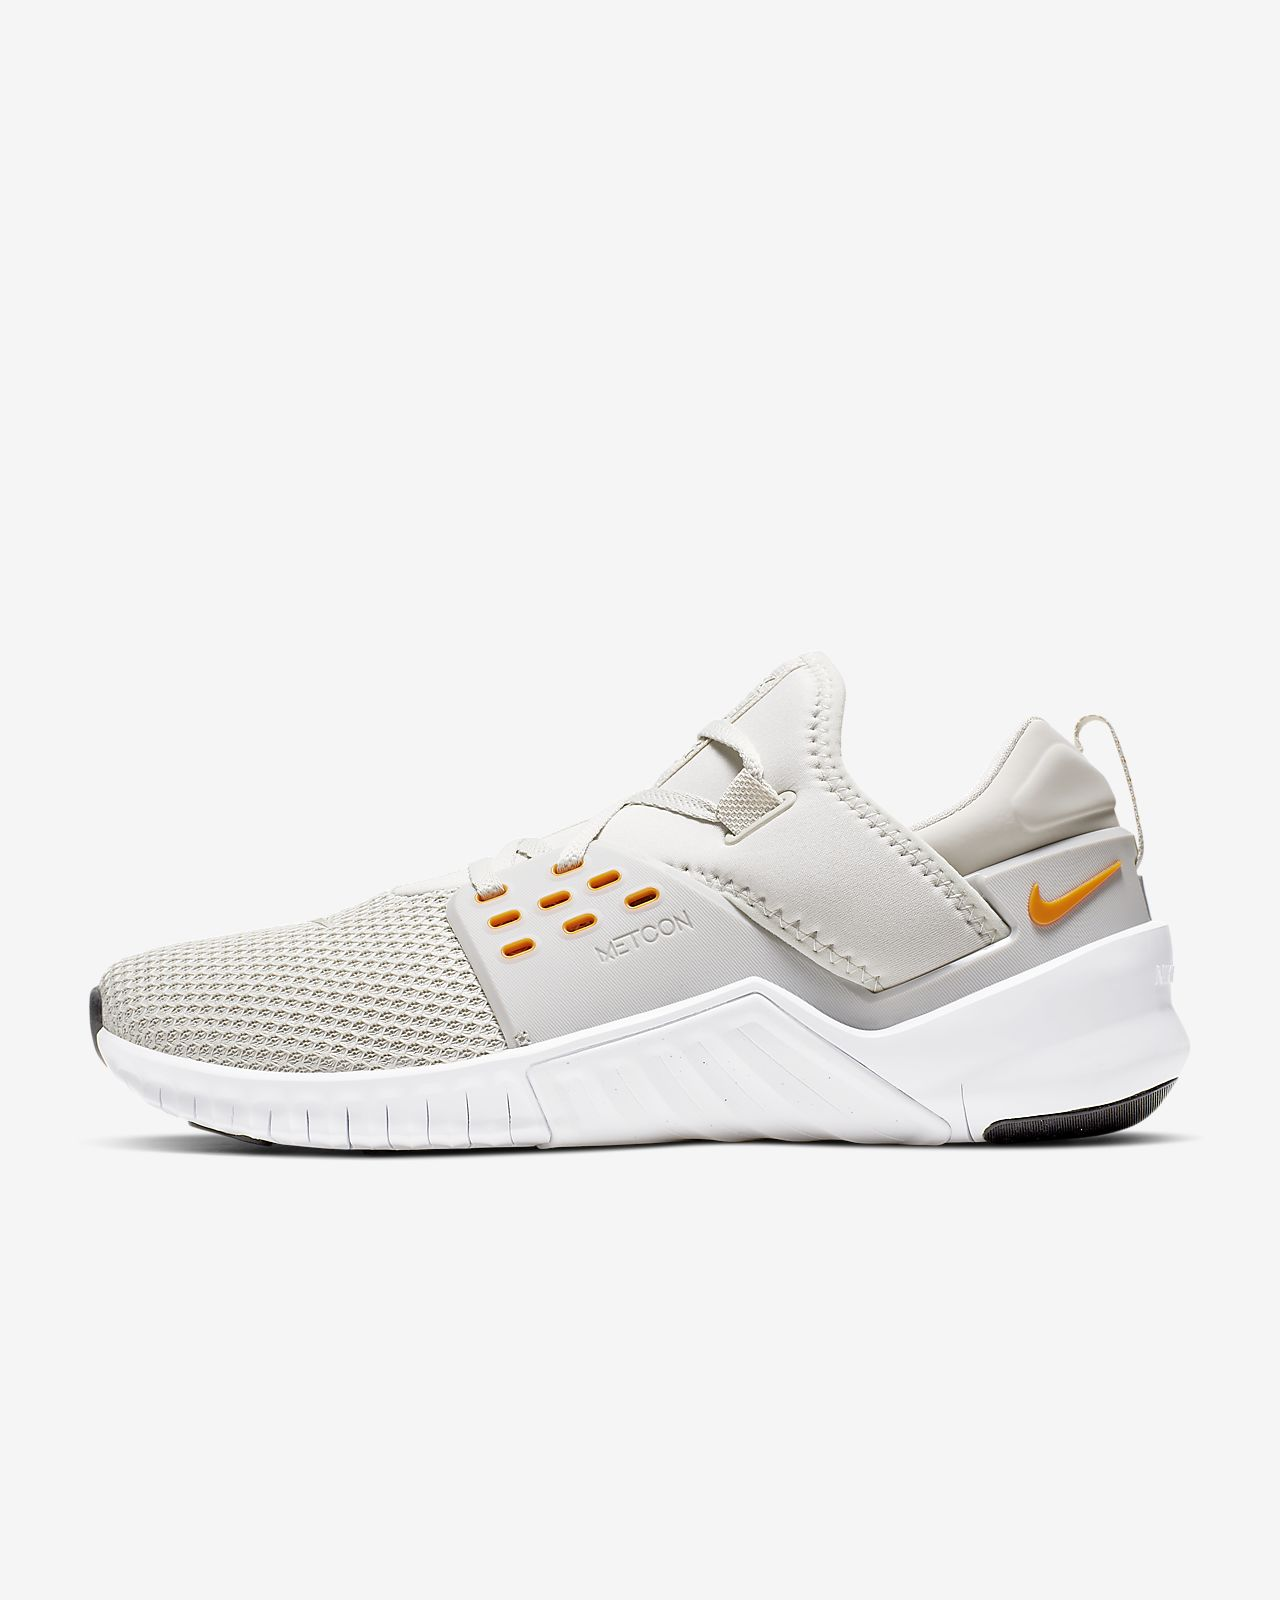 online retailer 61043 860e5 Men s Training Shoe. Nike Free X Metcon 2